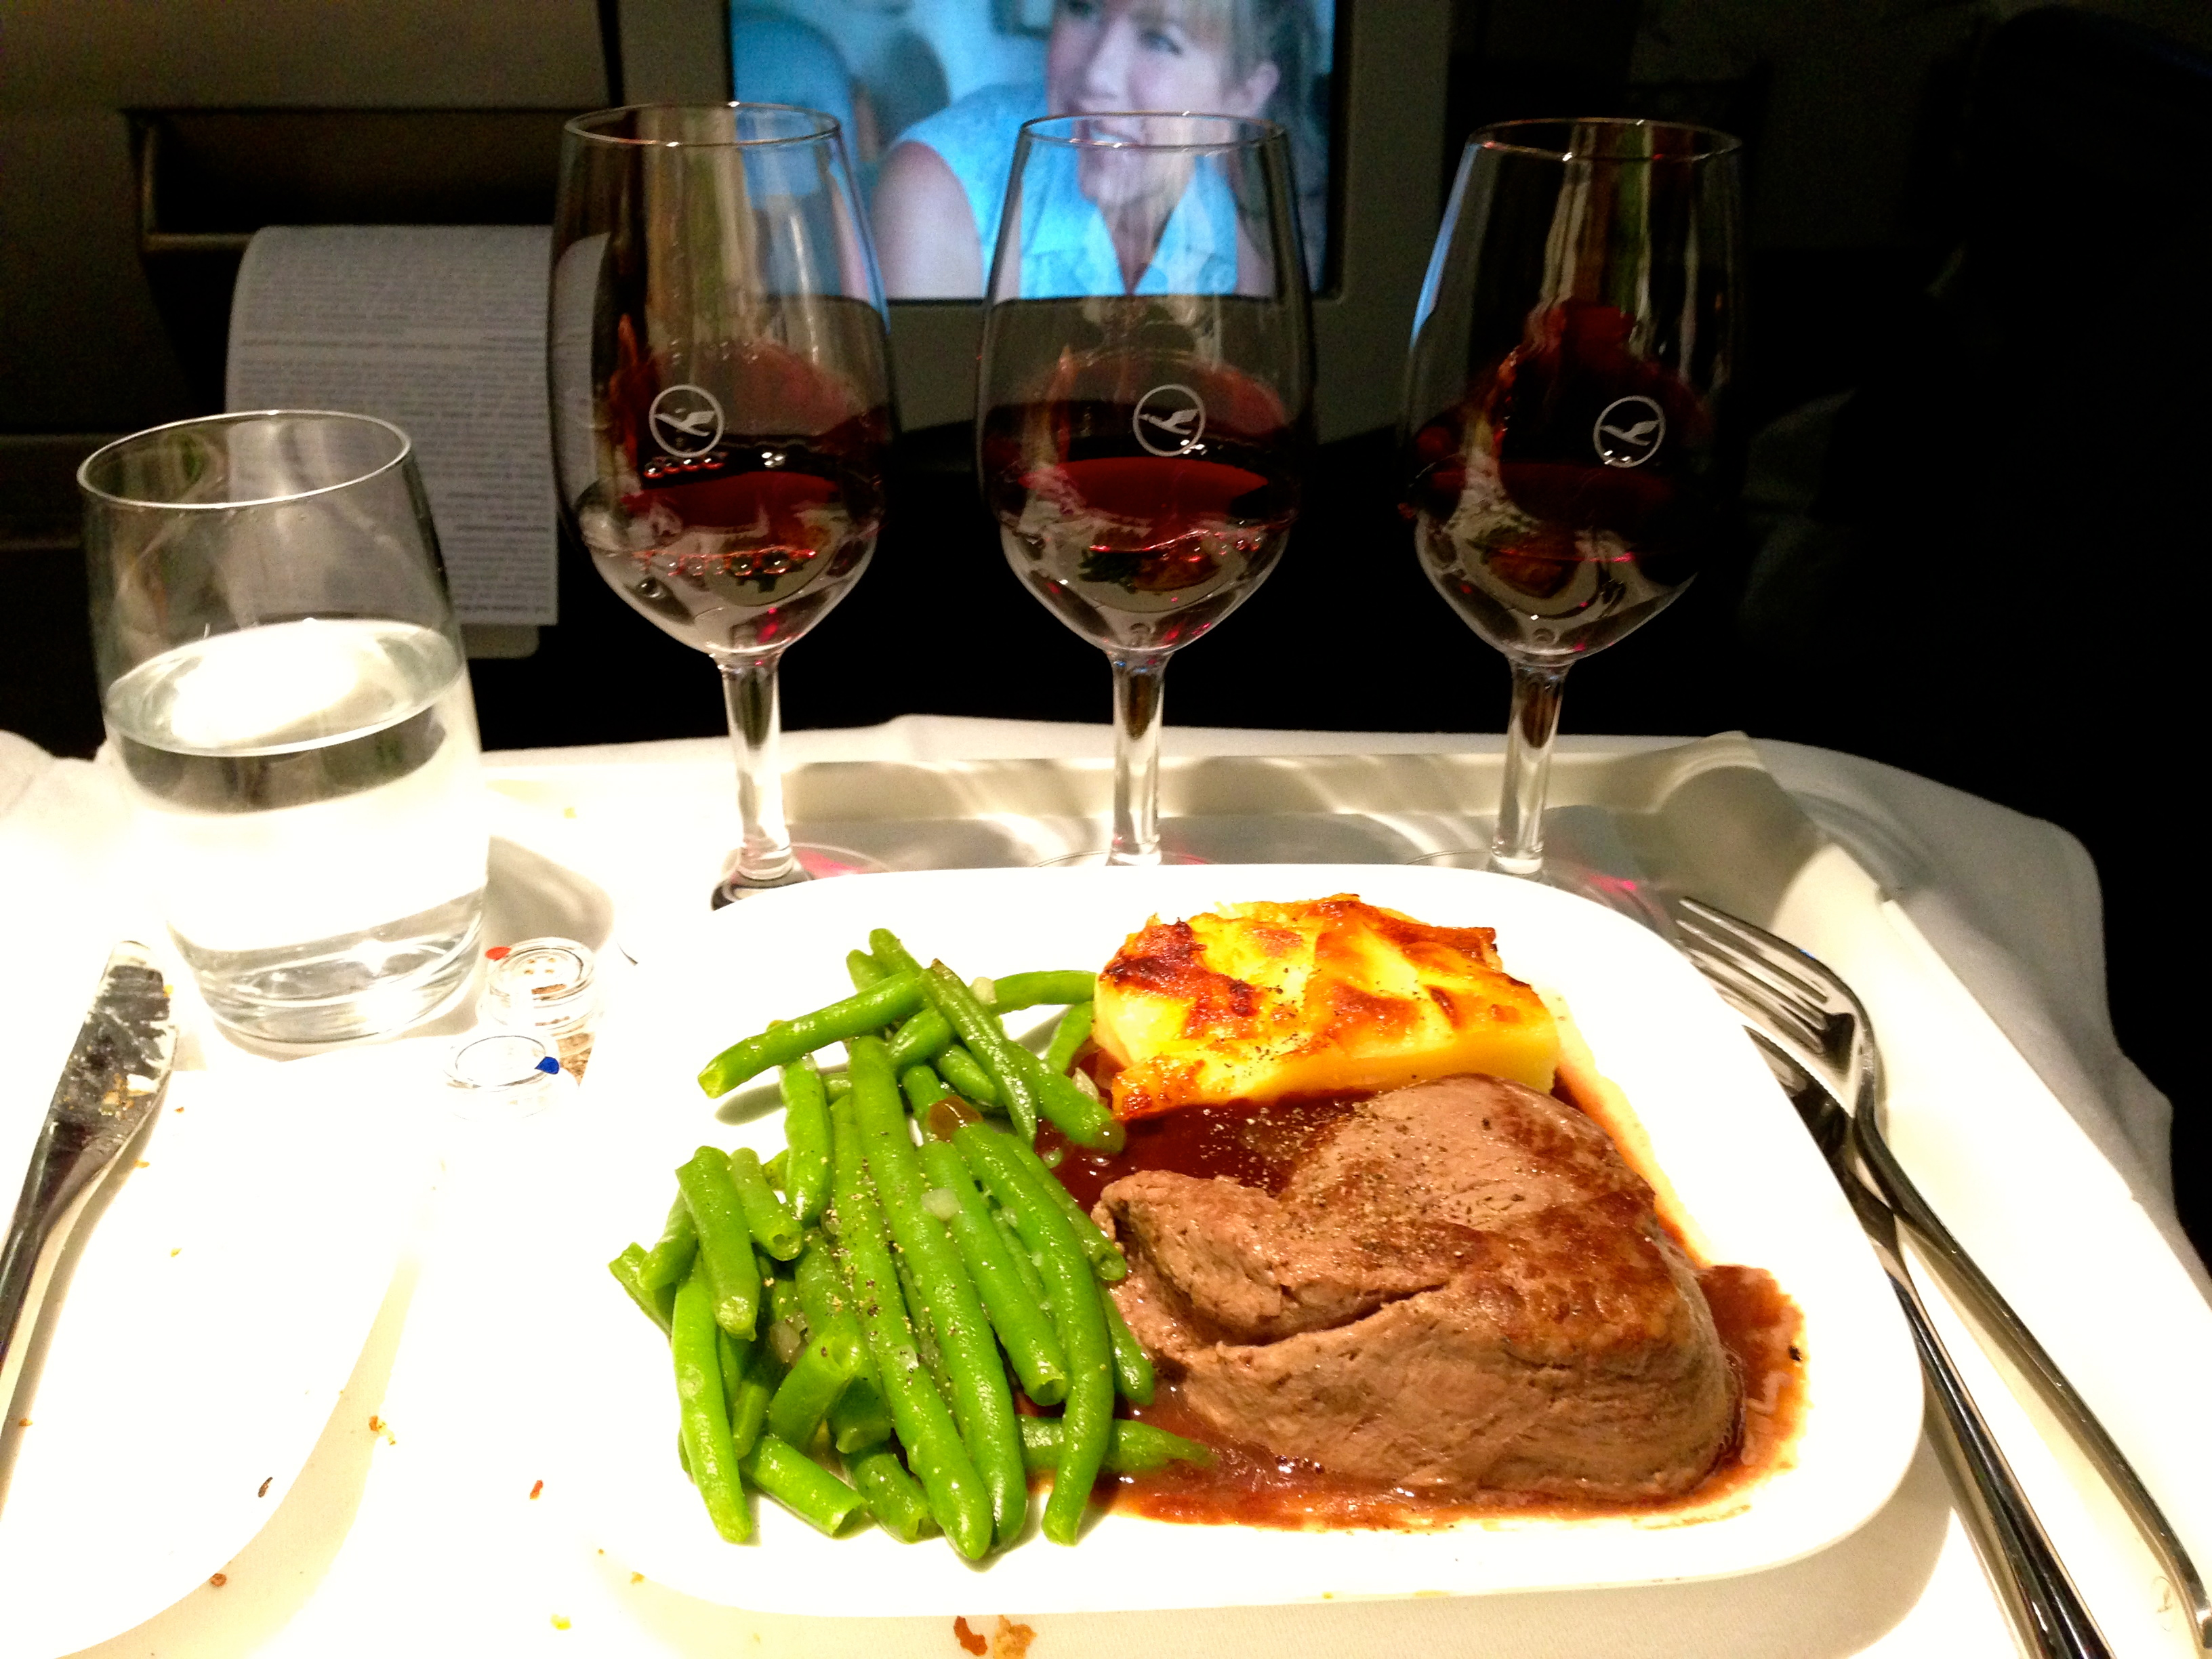 Lufthansa A340-300 Business Class Main Course Beef Entree Munich to and Wine Flight Chicago